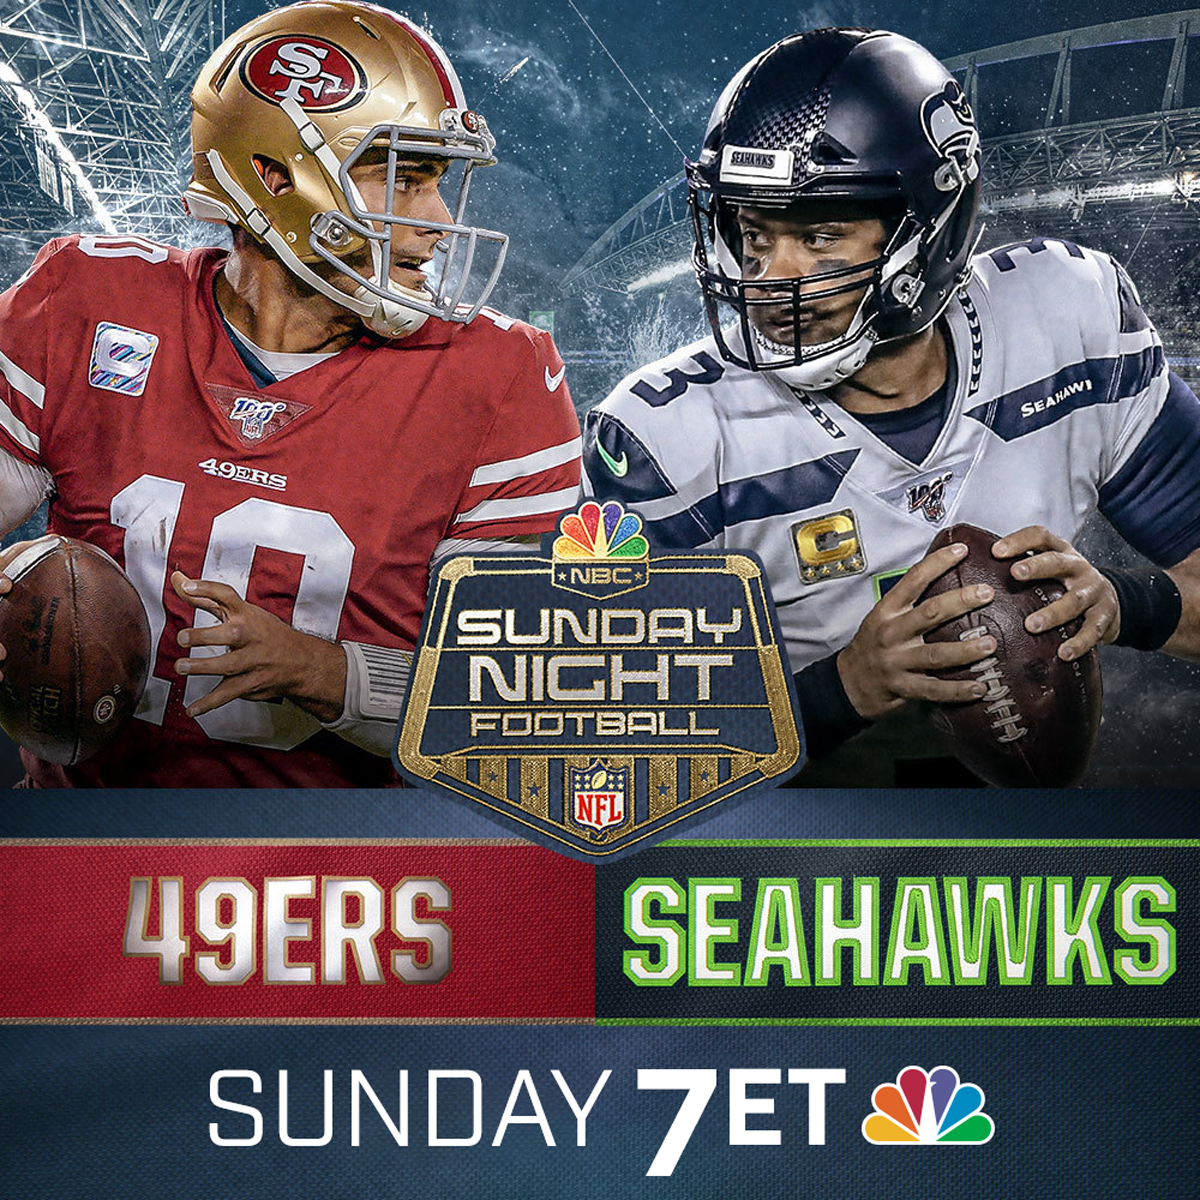 watch seahawks vs 49ers live online free